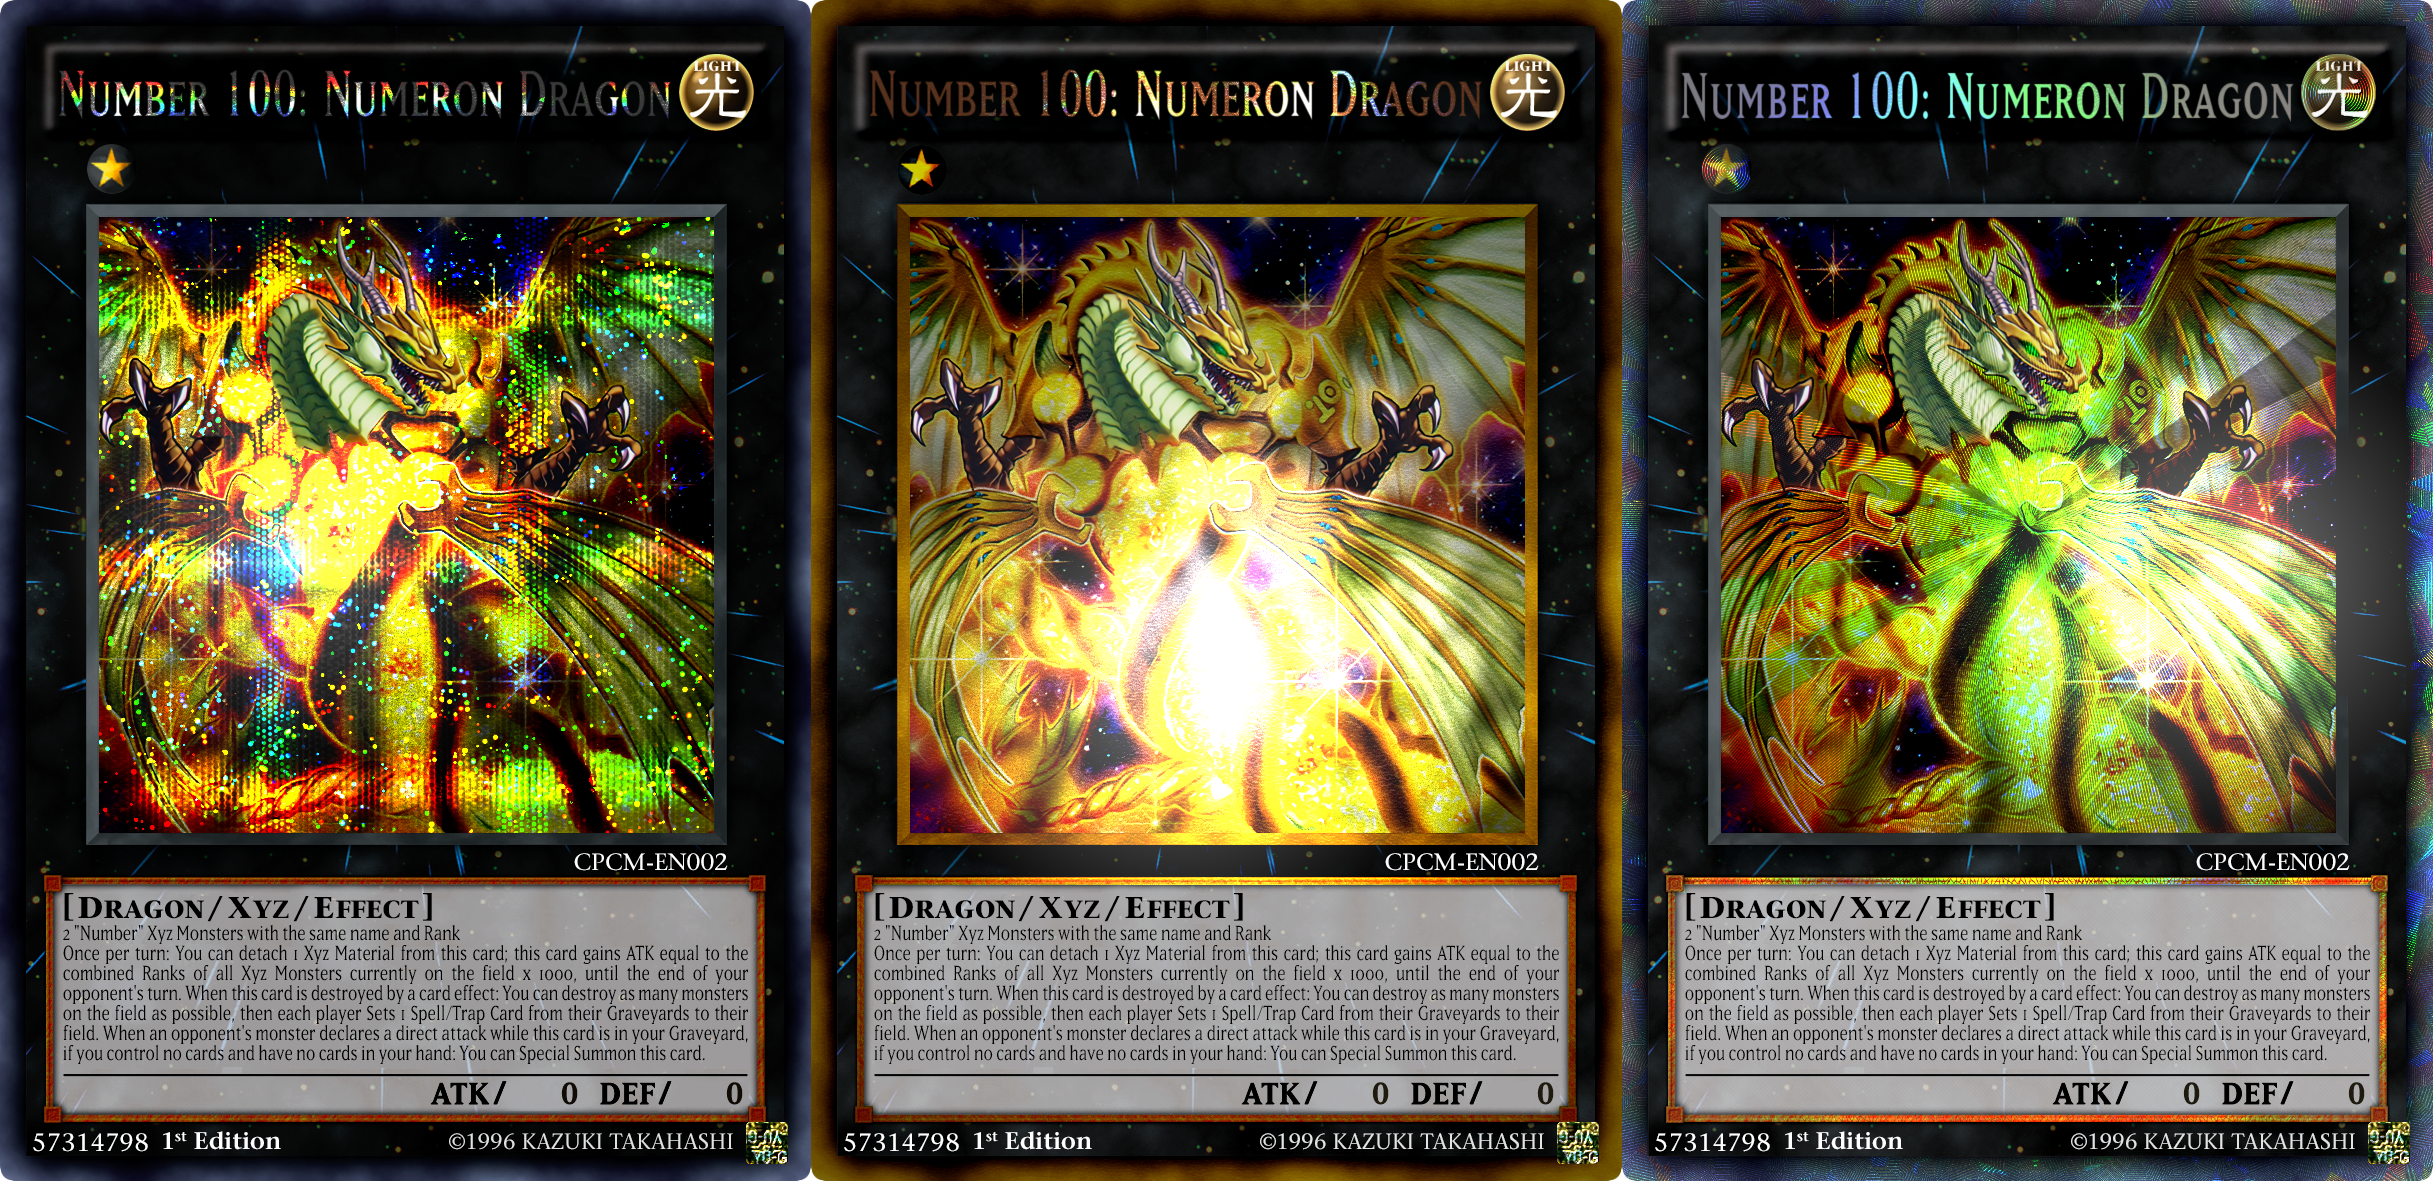 Yugioh Number 100 Numeron Dragon Effect Finally Revealed - YouTube